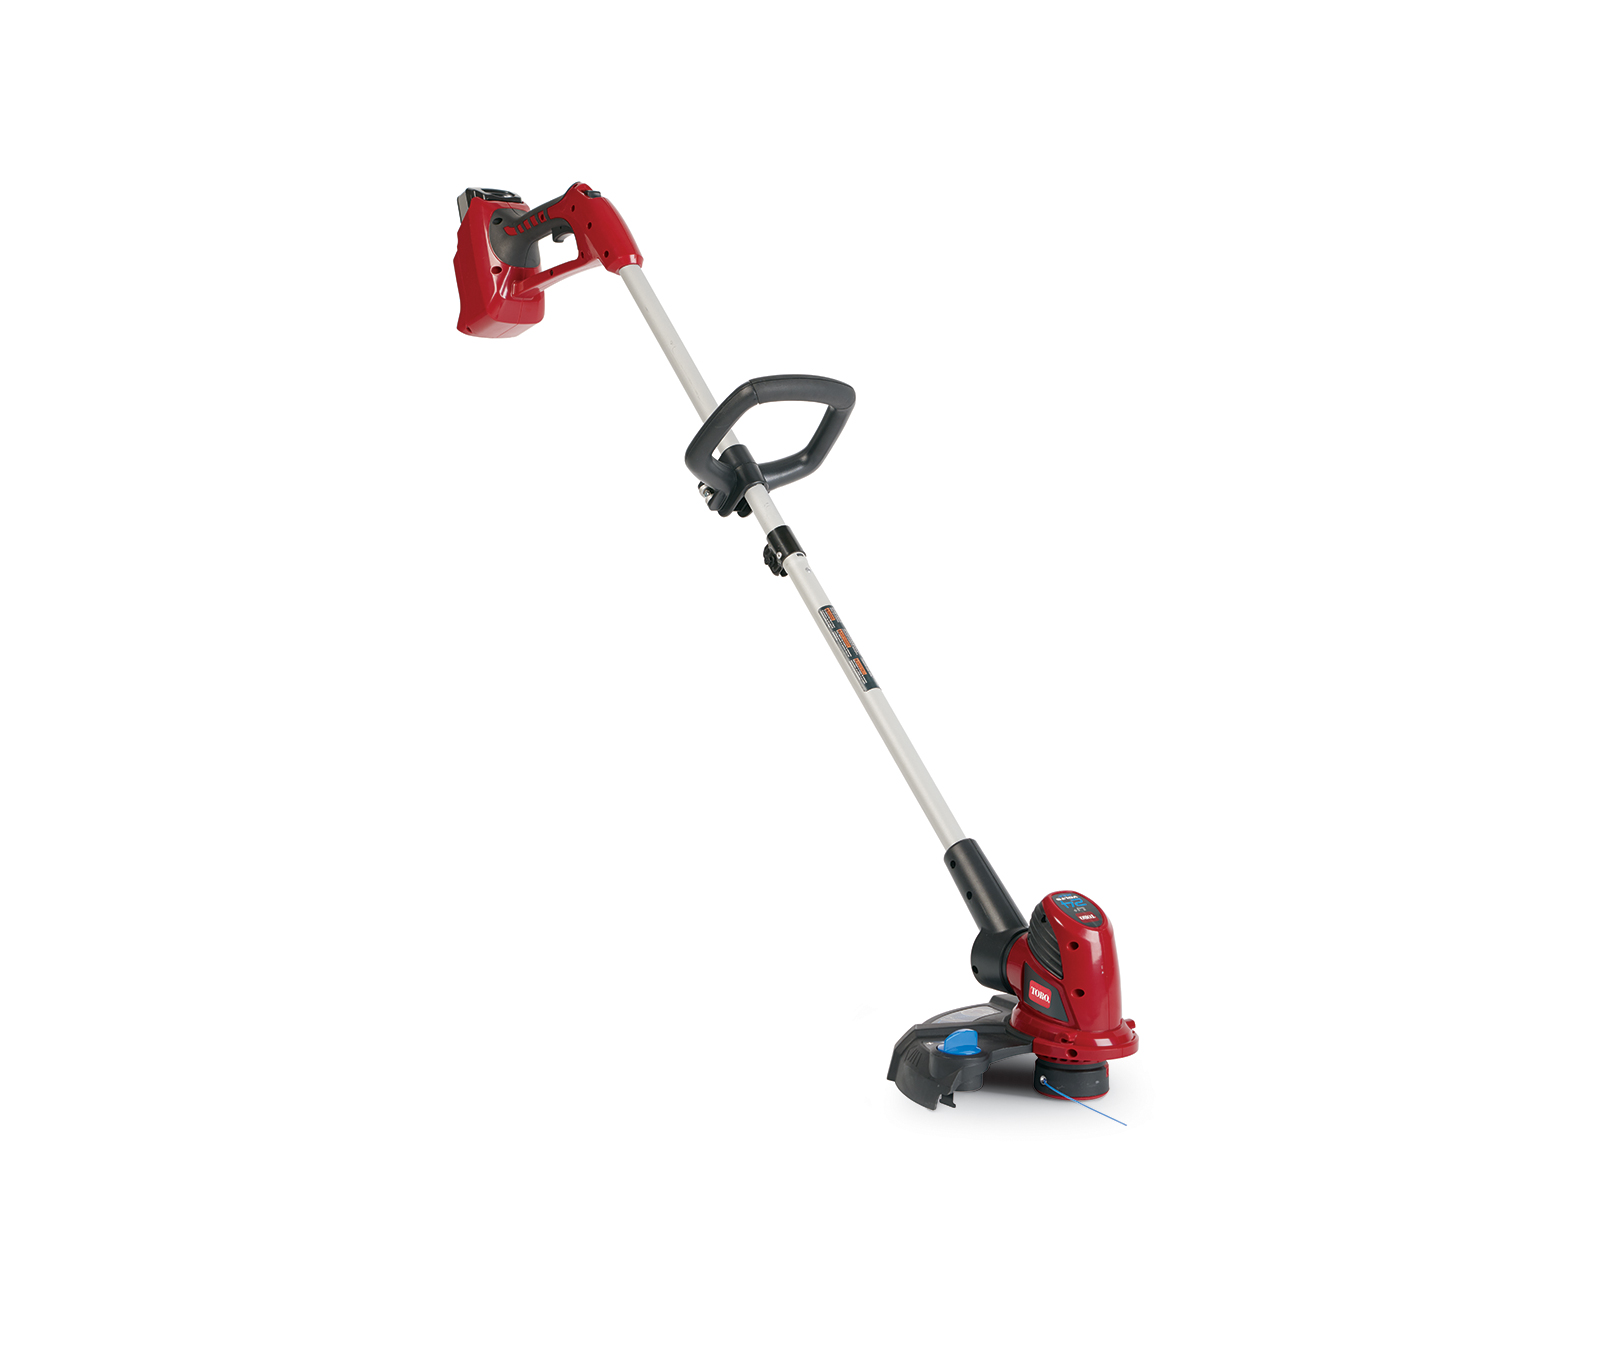 ... Array - toro 24v max 12 cordless trimmer edger yard tools rh ...